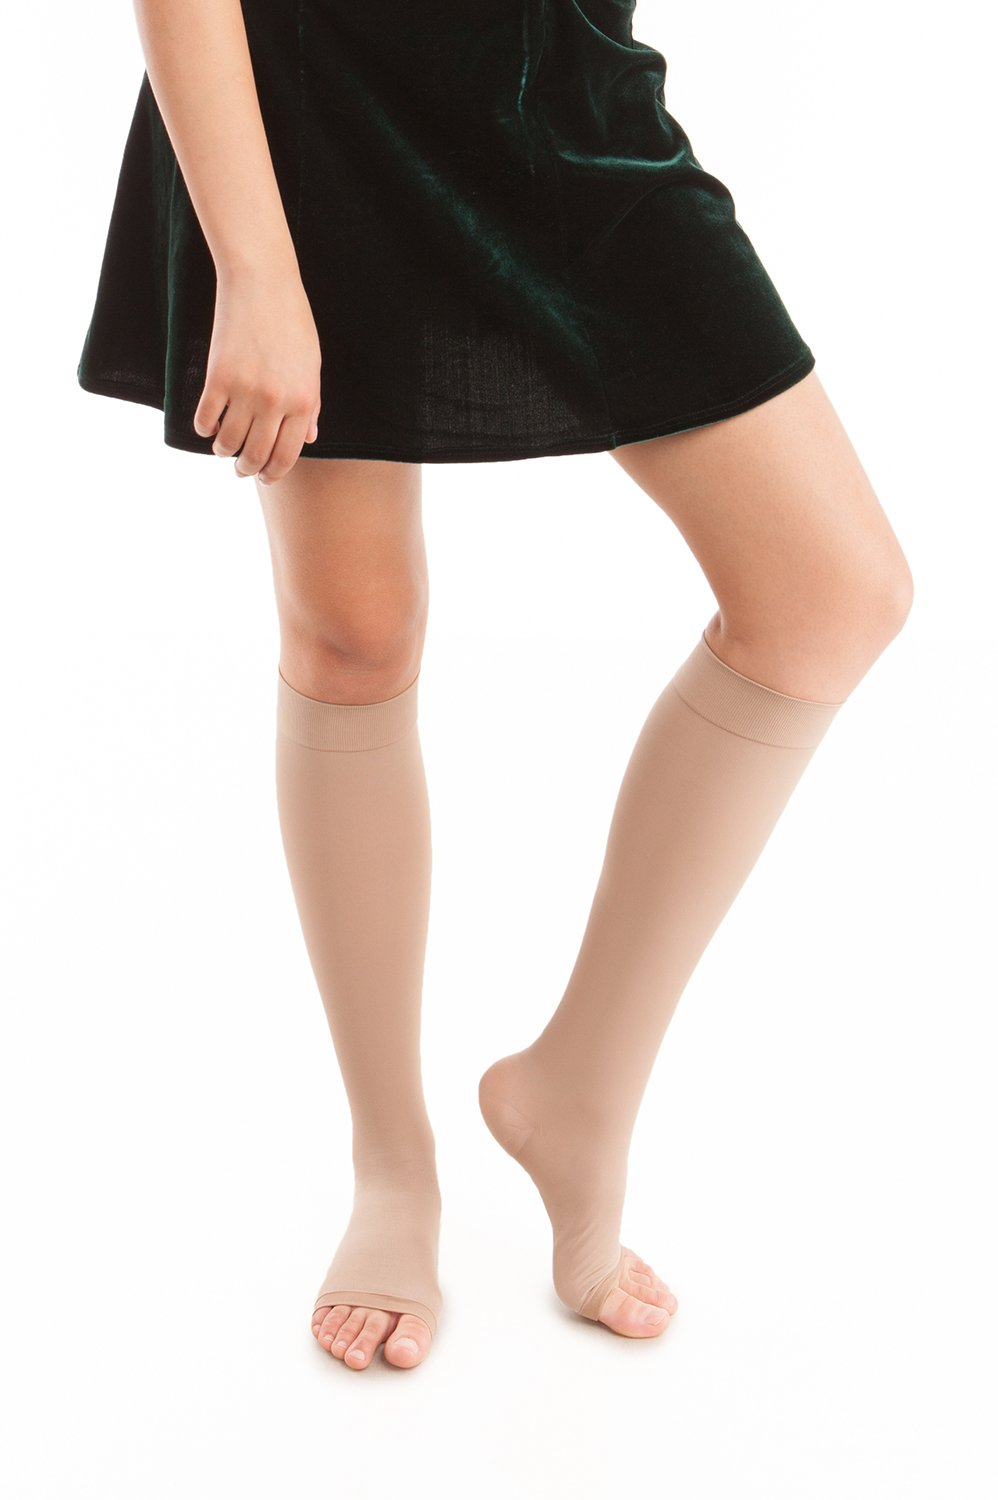 Microfiber Open Toe Knee Highs - Strong Compression - 25 to 35 mmHg